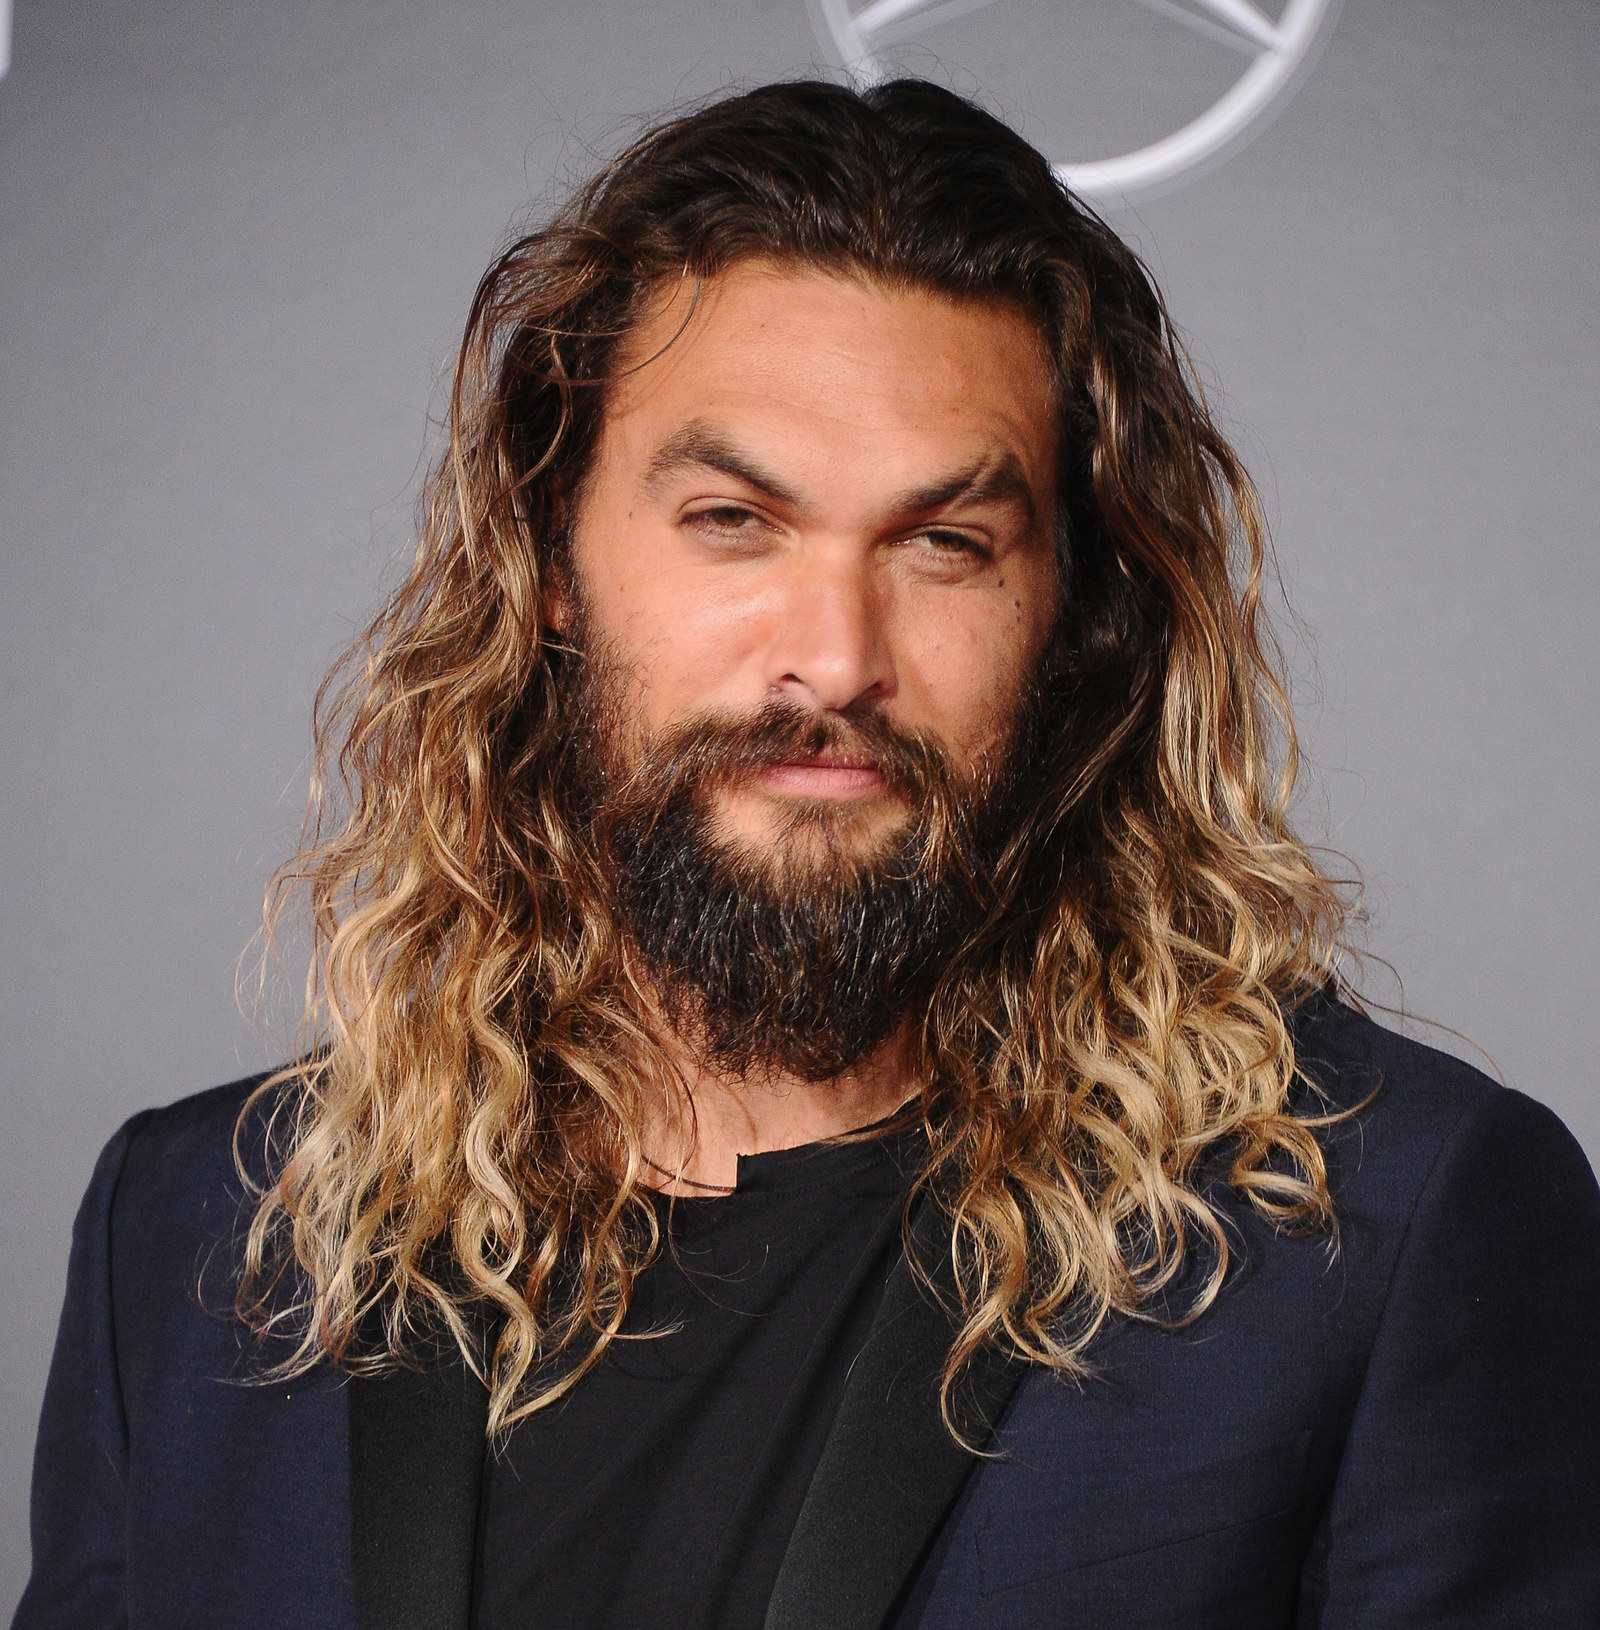 Jason Momoa Transformation: Grooming, Fortnite, Blake Griffin